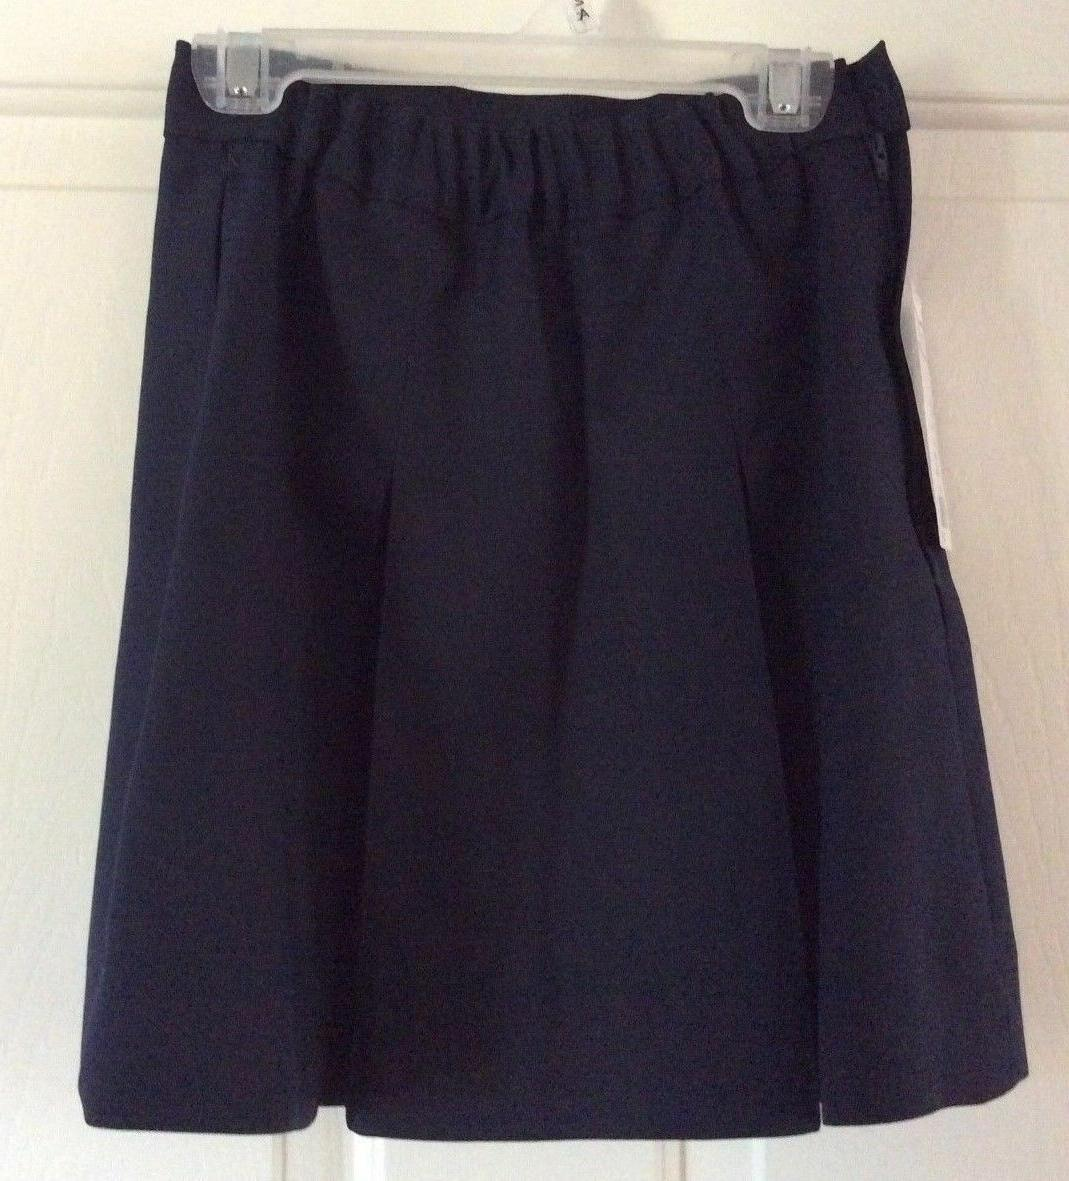 FLYN Navy Skirt Girl 6C NWT